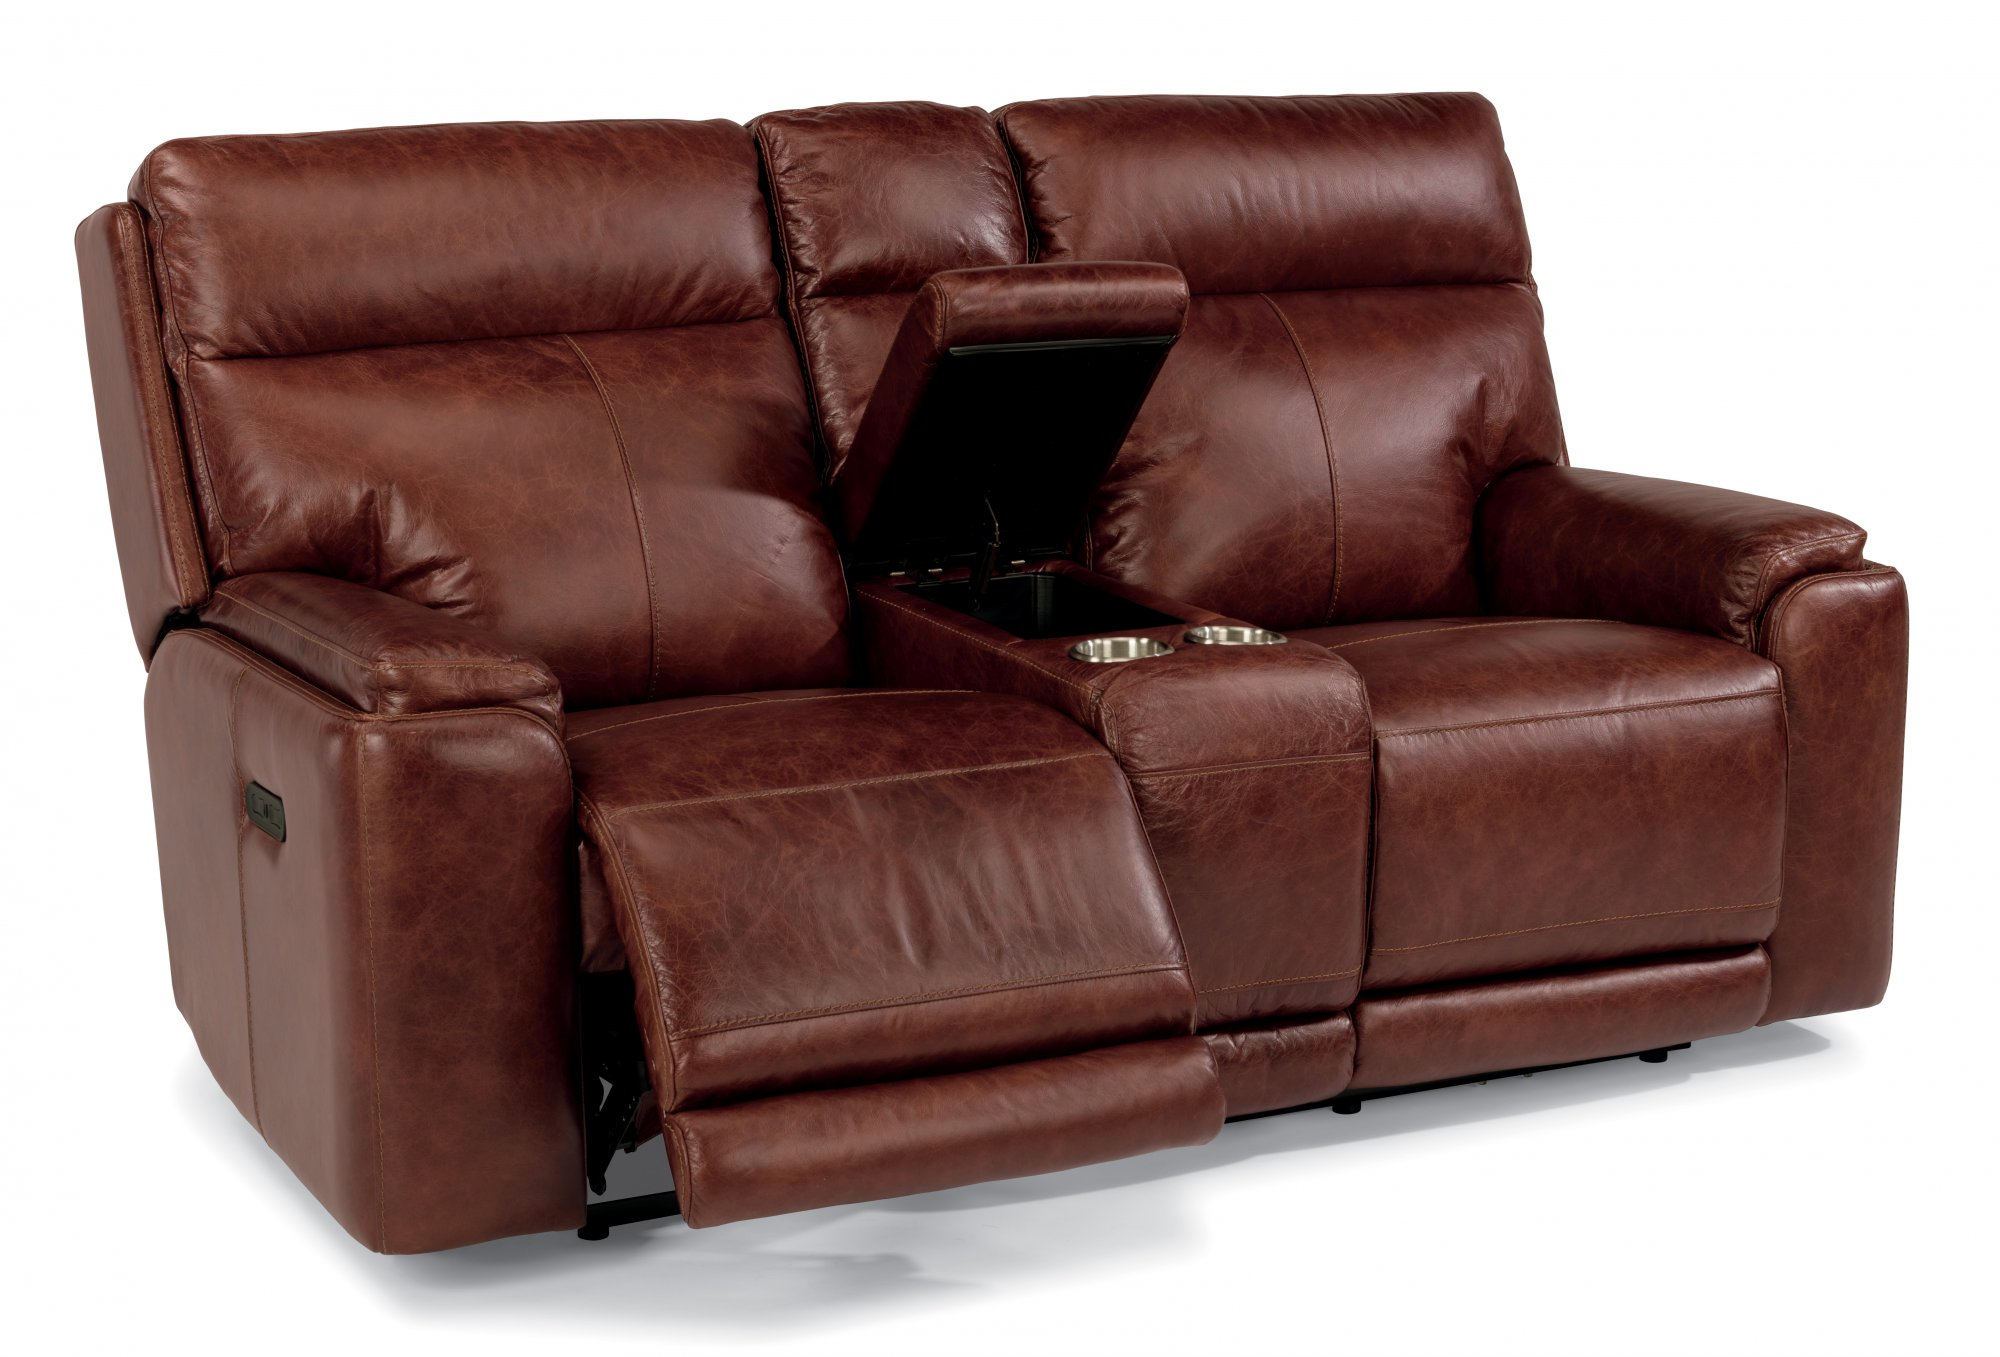 reclining leather loveseat leather power reclining loveseat with console and power headrests lhukuai